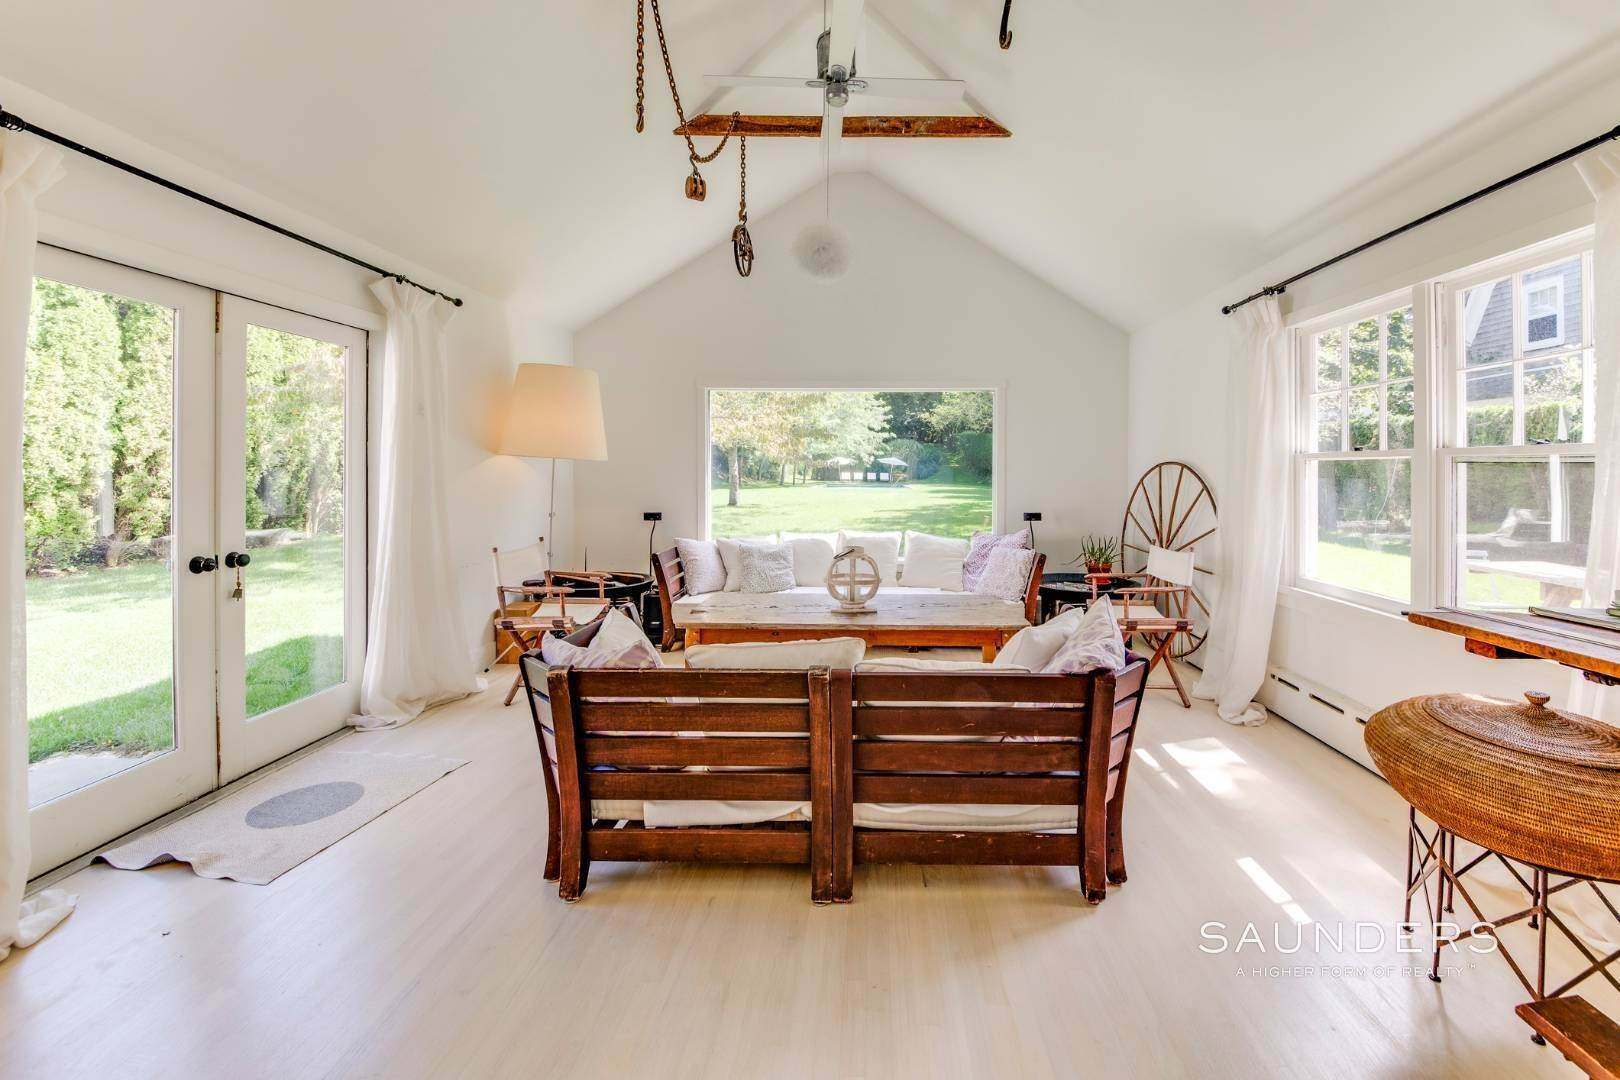 5. Single Family Homes for Sale at South Of Highway - Turnkey Charmer 136 Cove Hollow Road, East Hampton, East Hampton Town, NY 11937